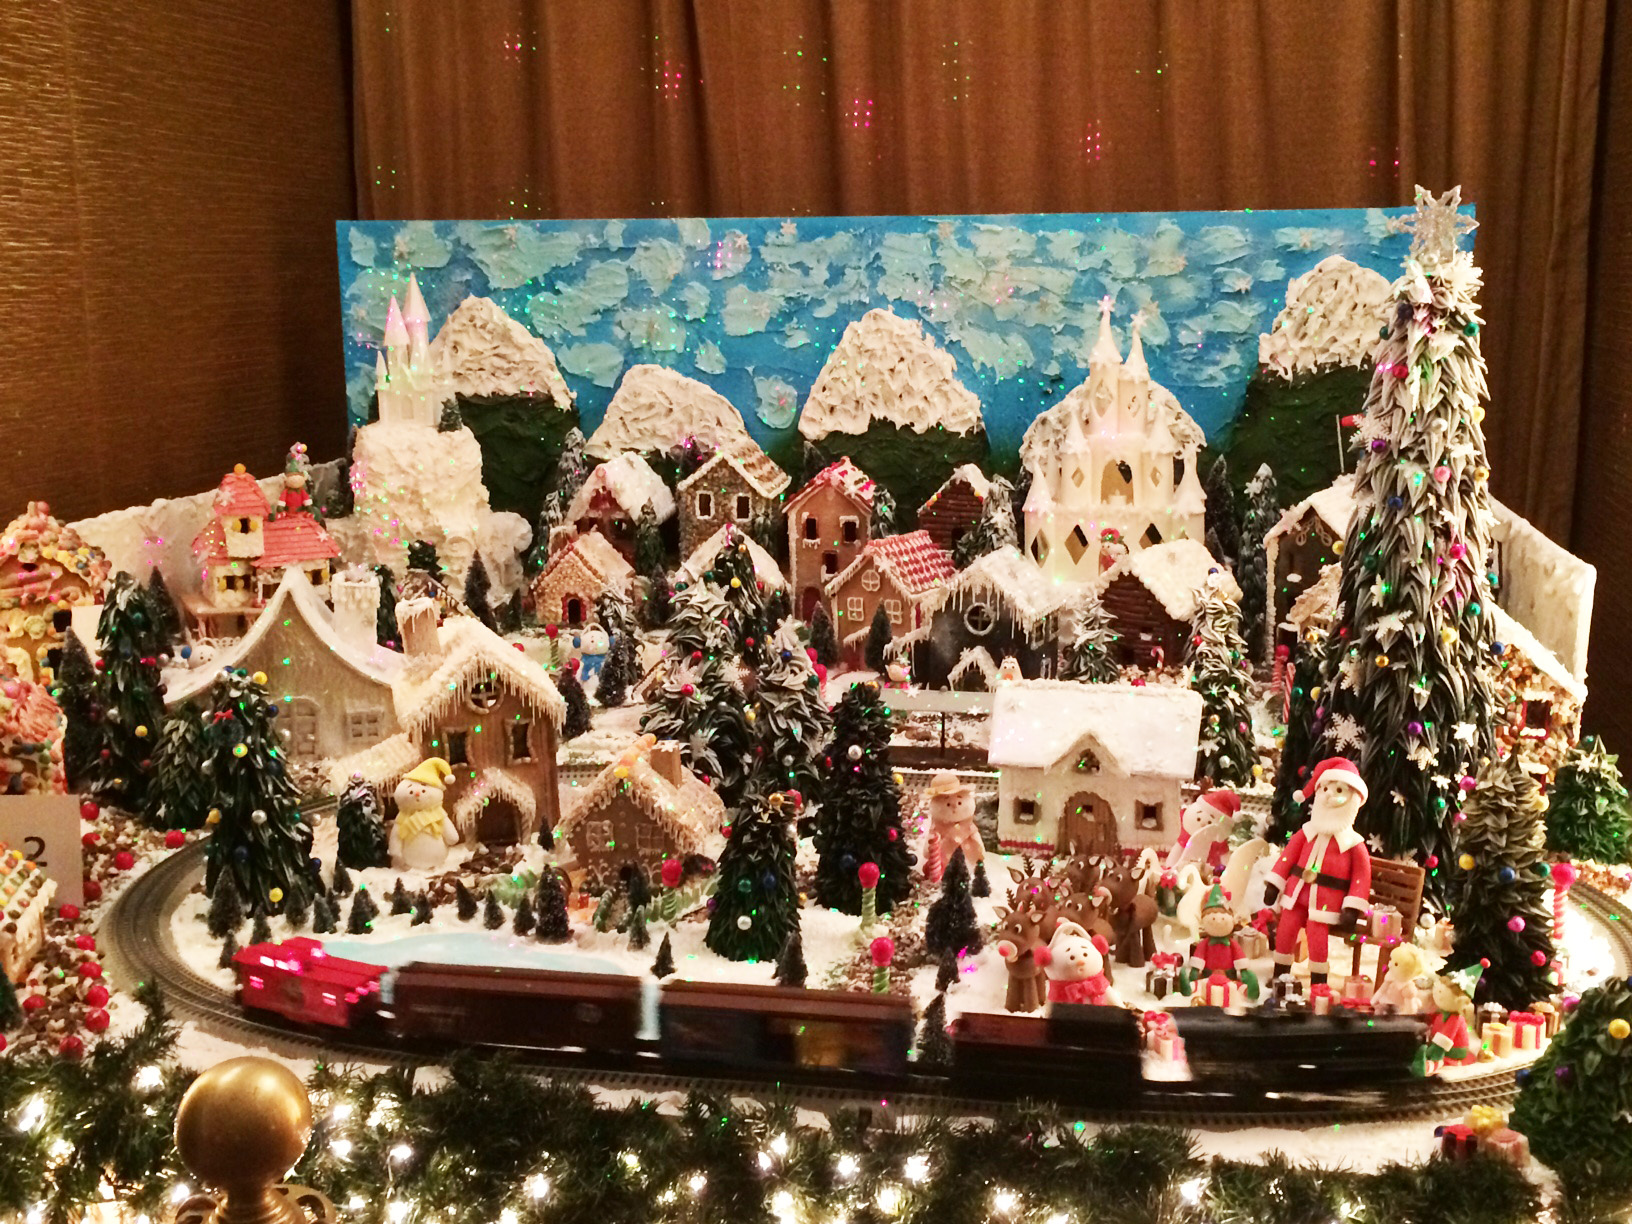 Gingerbread houses on display at the Langham Hotel in Pasadena